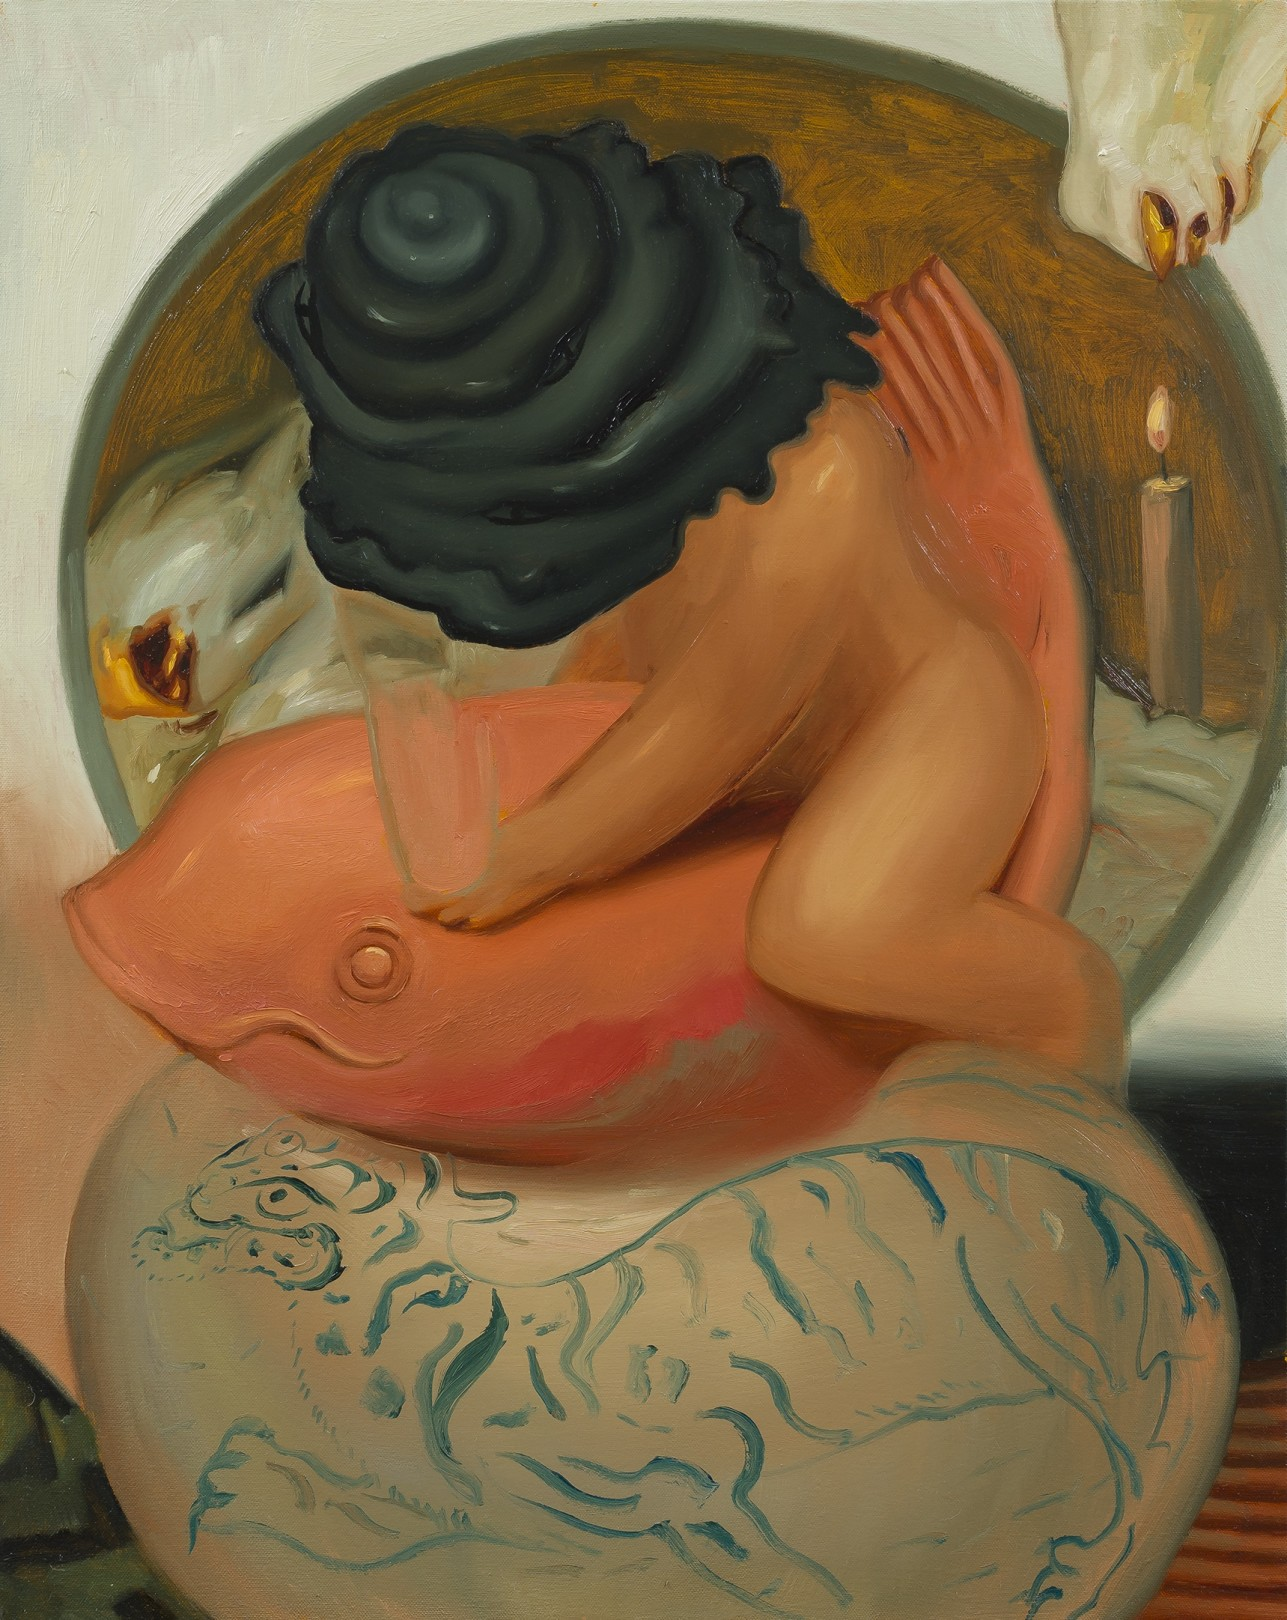 Dominique Fung Travelling Alone, 2019 Oil on canvas 60.9cm x 76.2 cm 24 x 30 in.